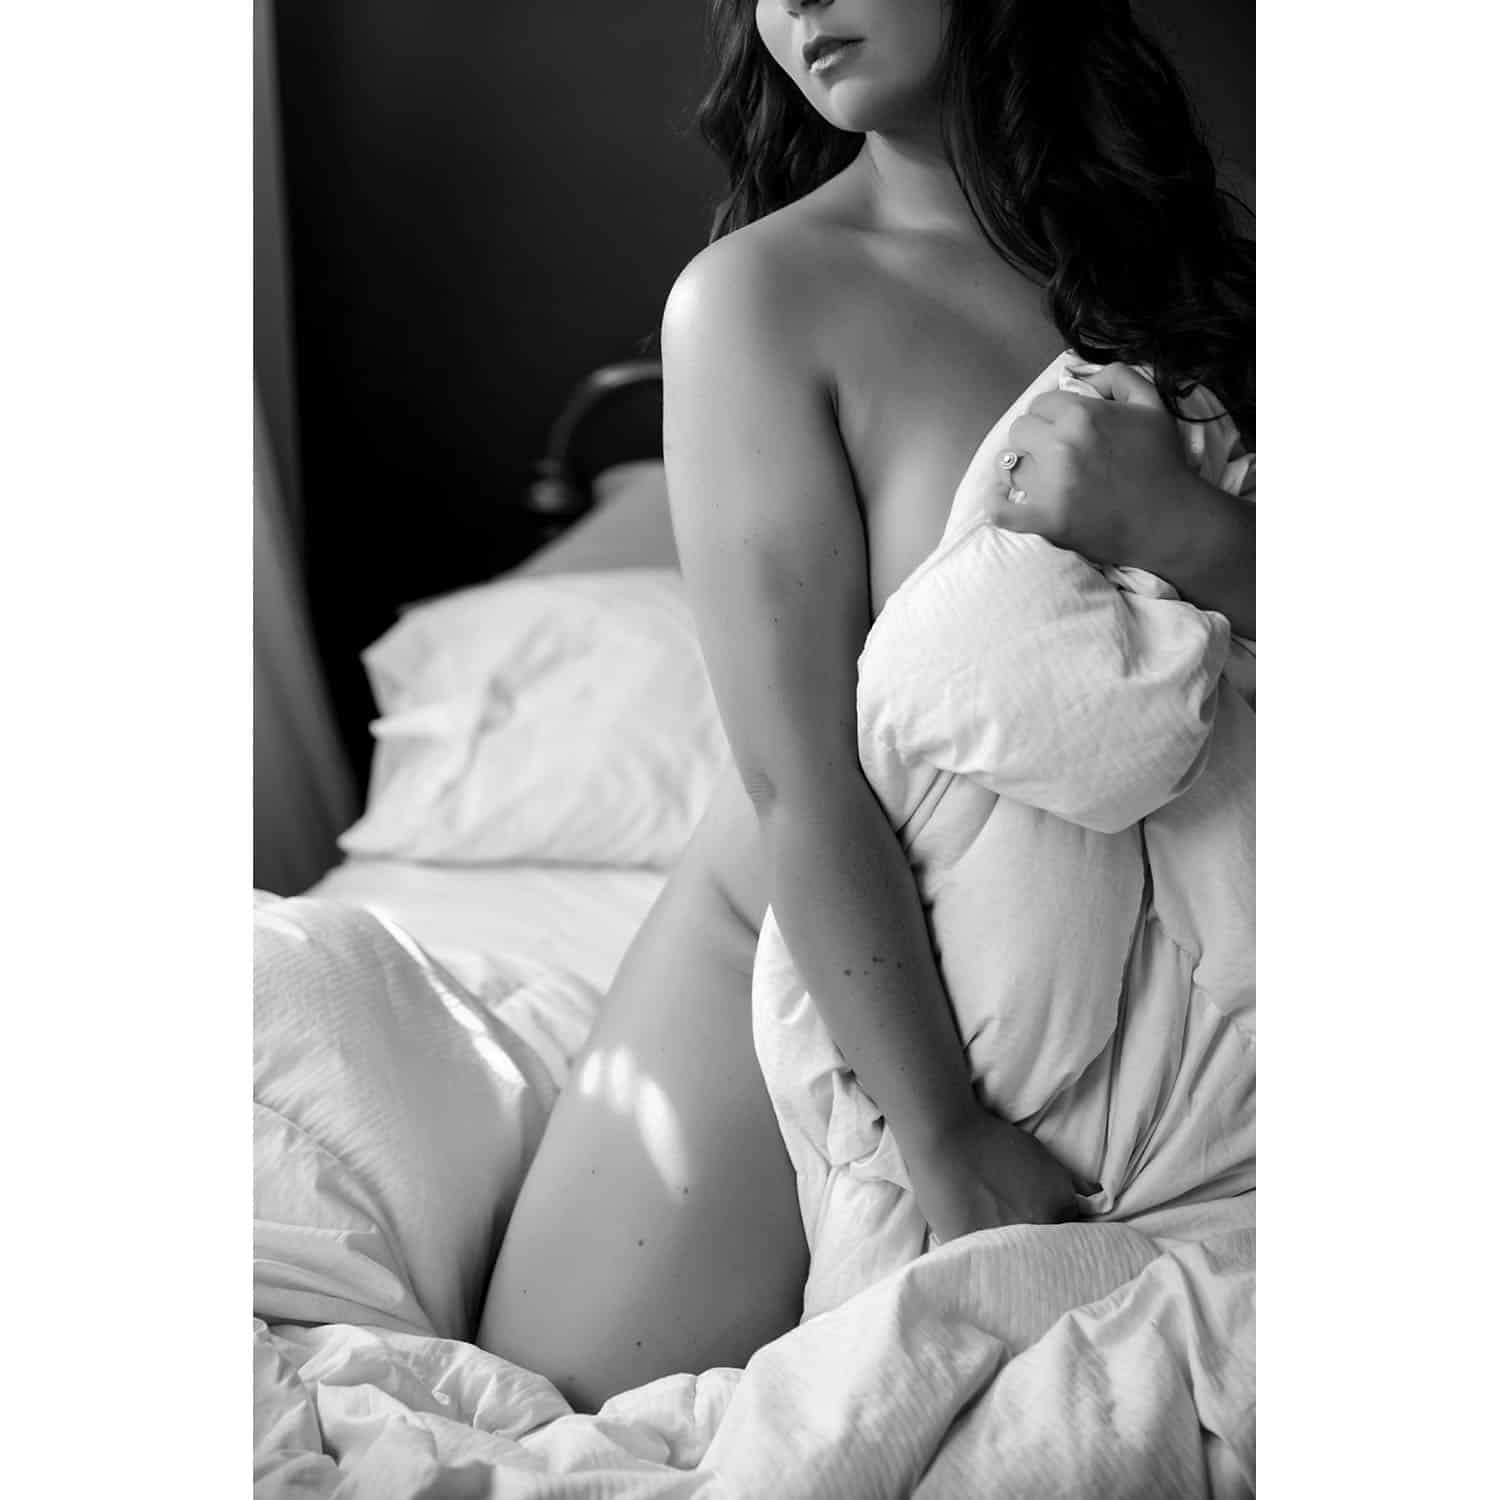 Boudoir Photo Poses That Will Make Her Look Drop Dead Gorgeous